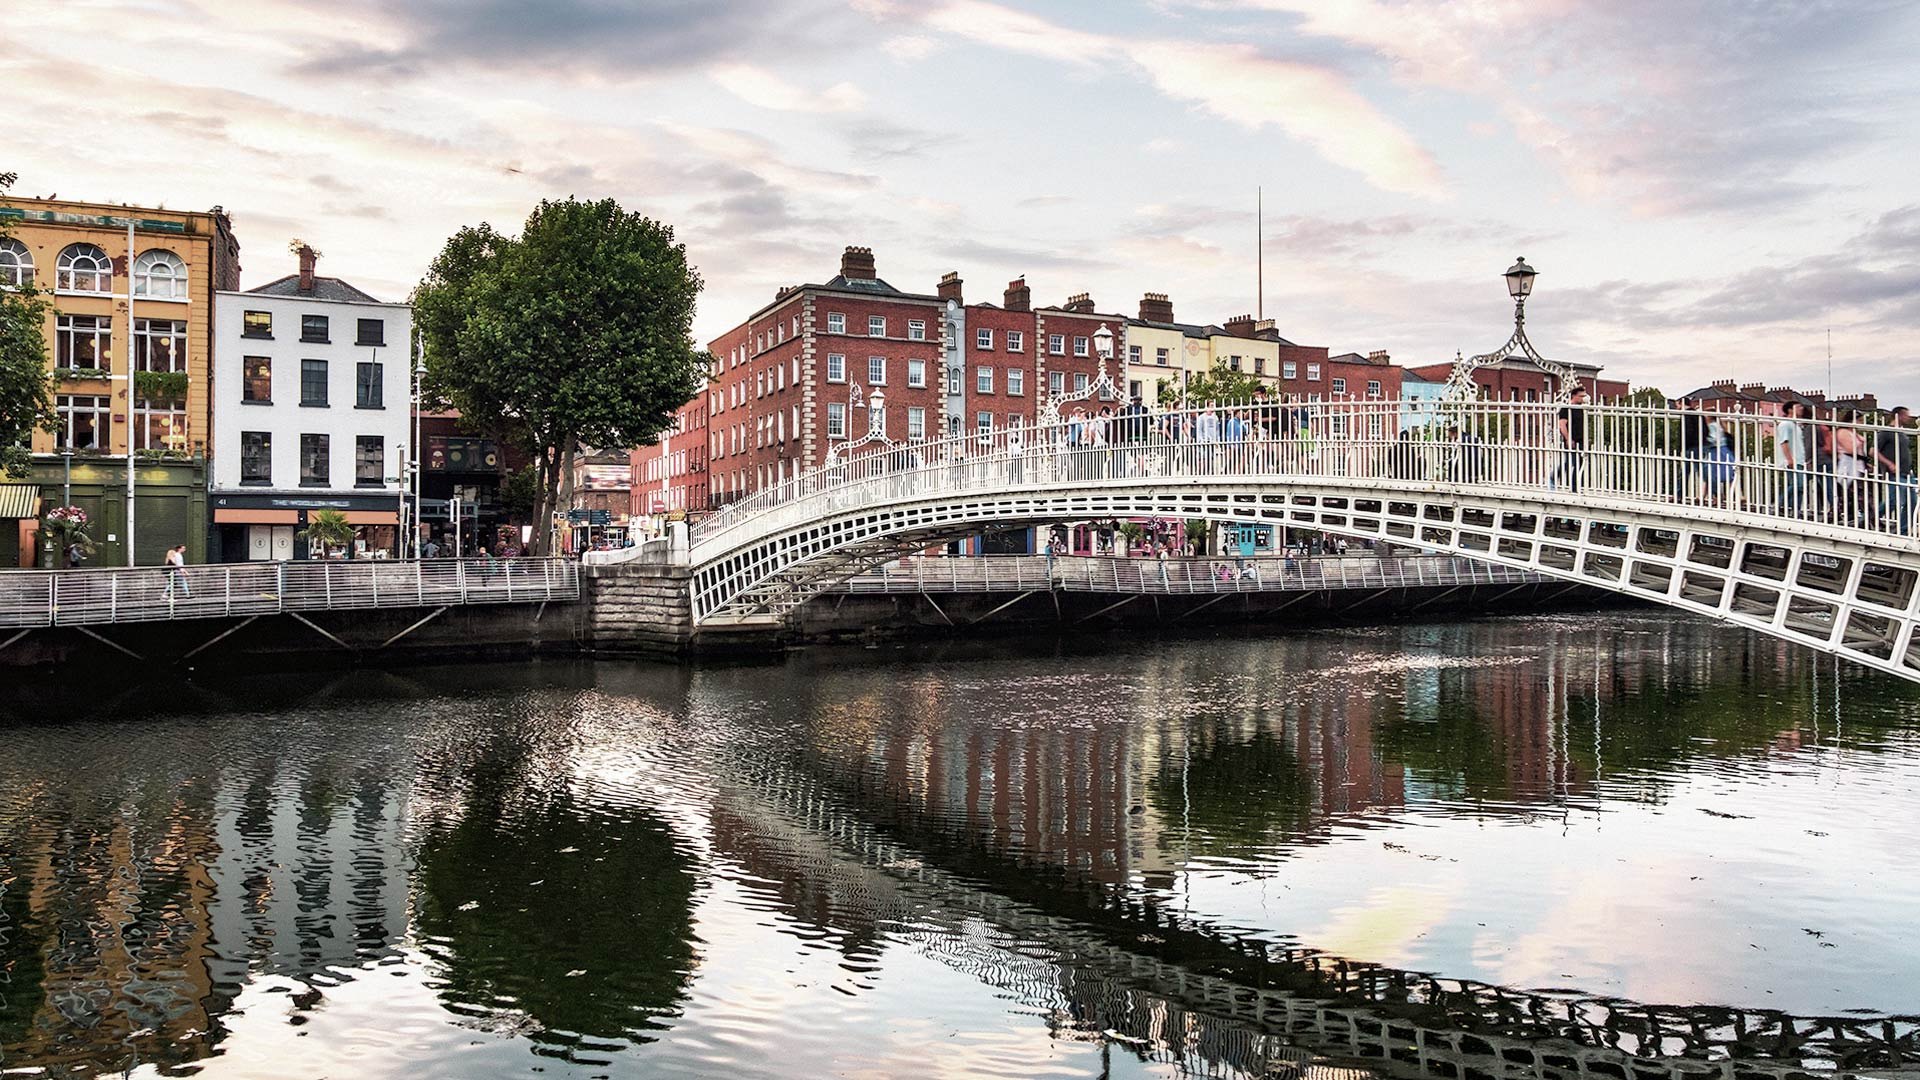 The Ha'penny Bridge is a pedestrian bridge over the River Liffey in Dublin